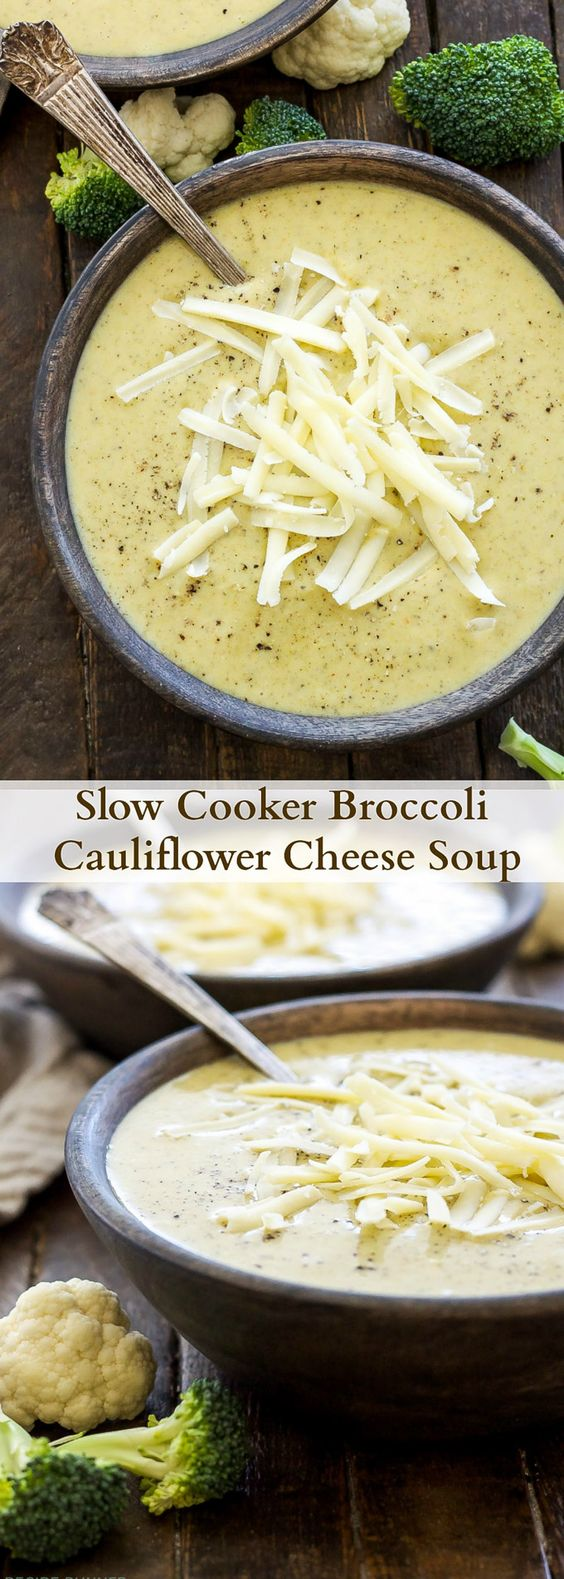 SLOW COOKER BROCCOLI CAULIFLOWER CHEESE SOUP